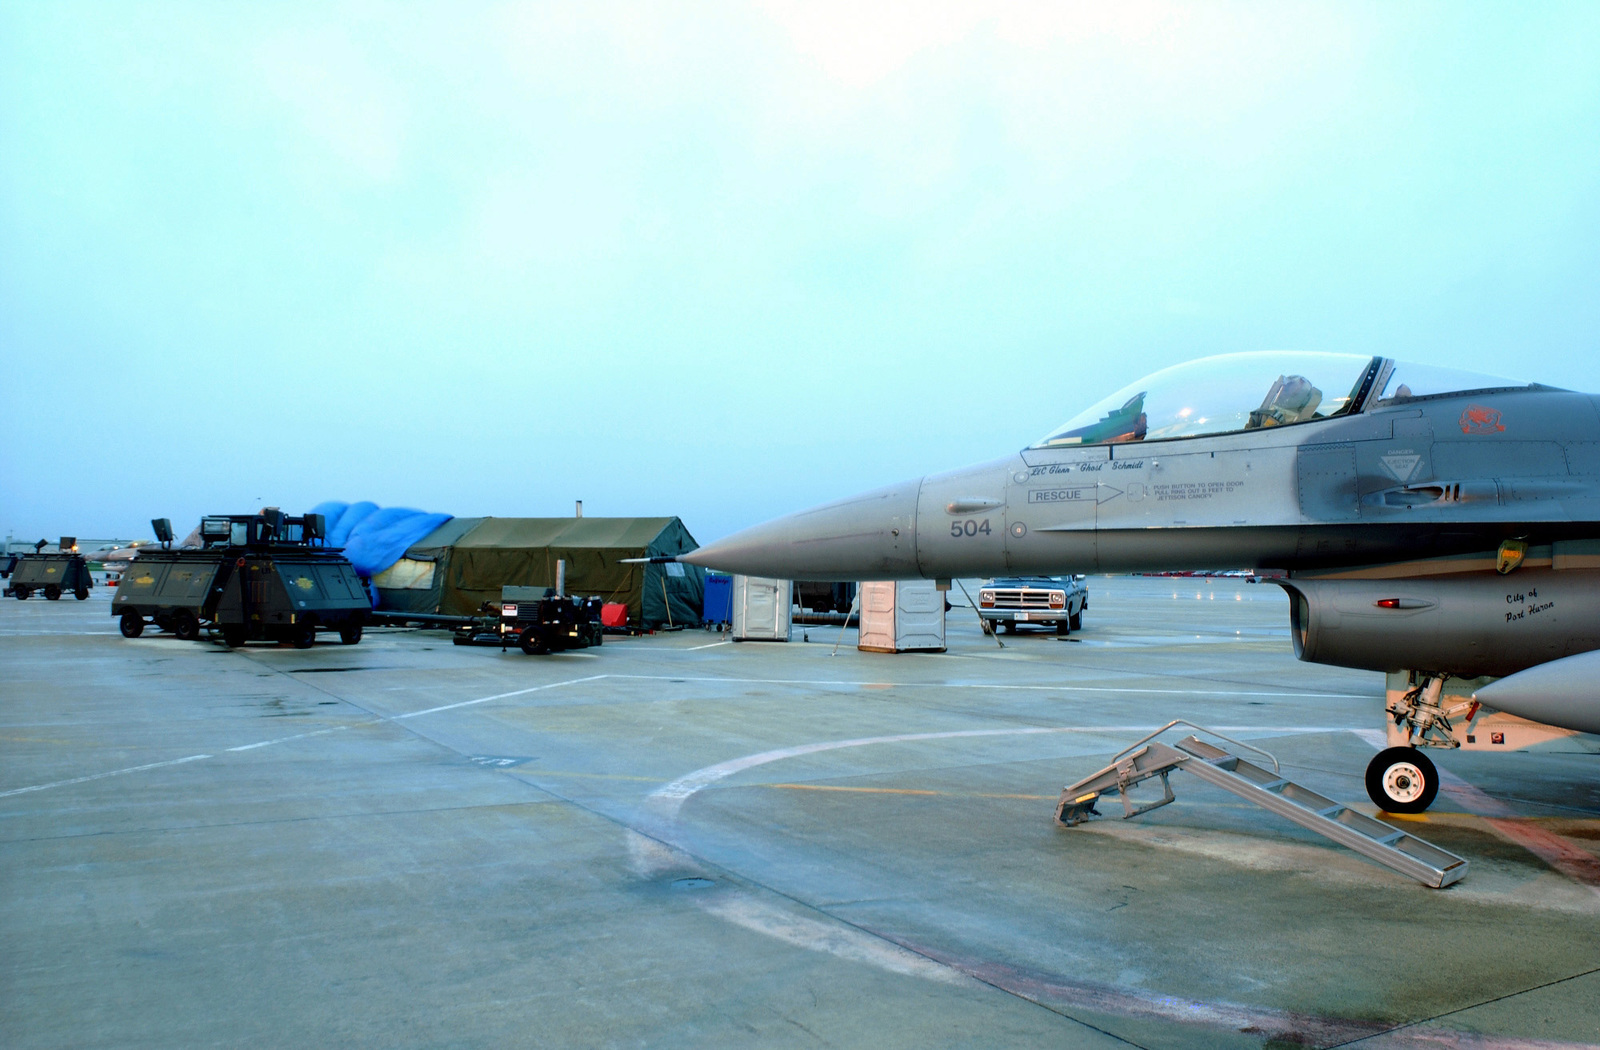 A 127th Wing, Michigan Air National Guard (ANG) F-16C Fighting Falcon aircraft is parked near the temporary alert tent, on the flight line at Selfridge Air National Guard Base (ANGB), in support of Operation NOBLE EAGLE